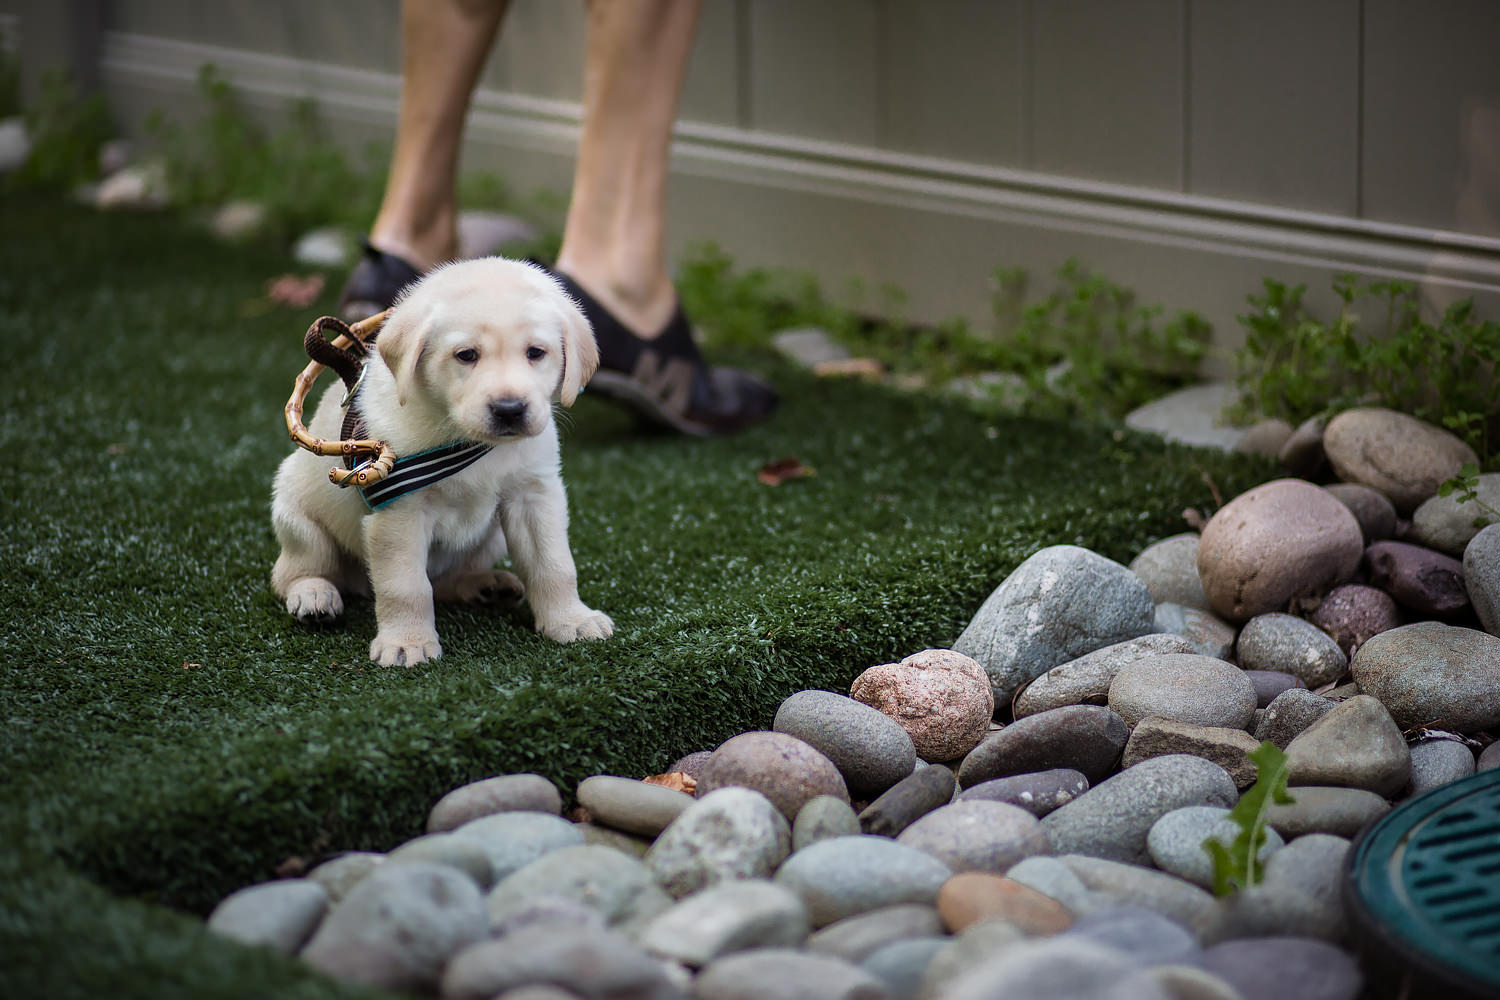 Guiding Eyes pup sits in front of a bed of river rocks.